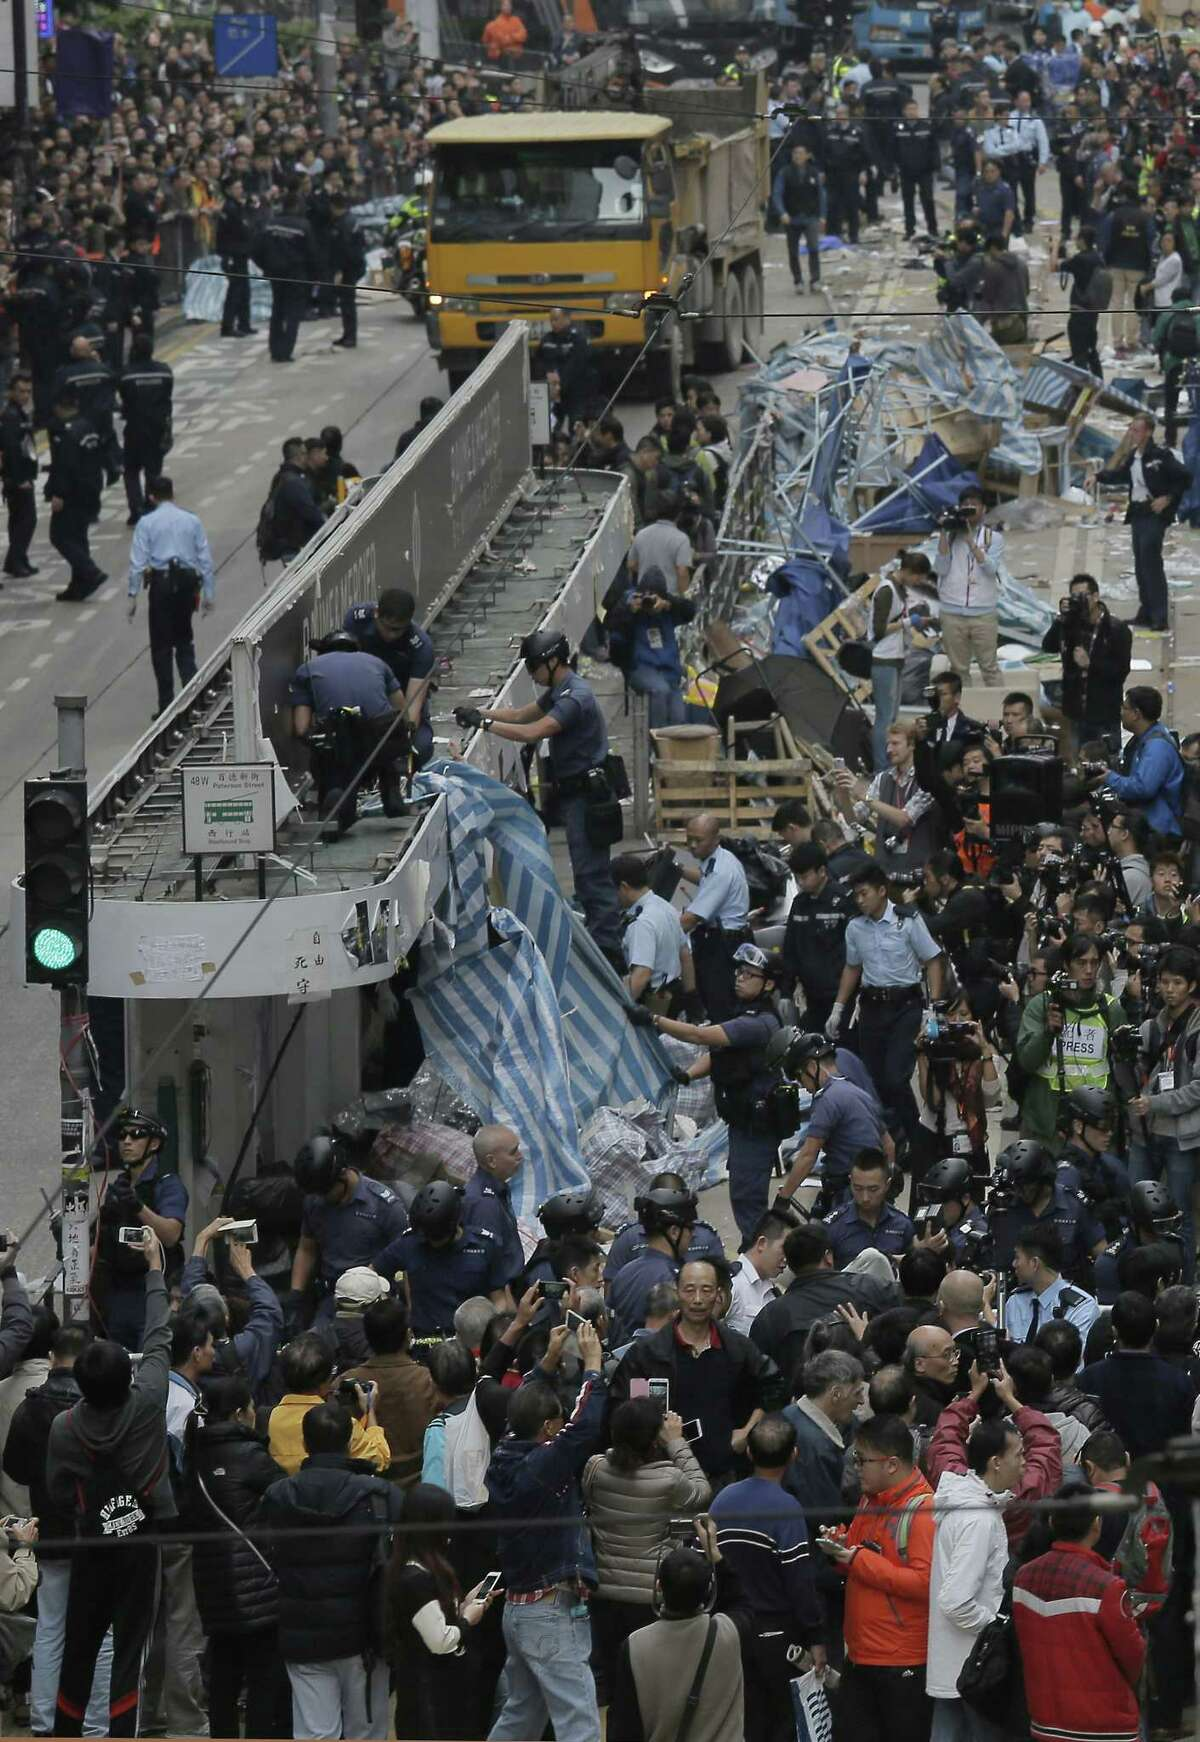 Police officers take down a tent on top of a train station on a main road in the occupied areas at Causeway Bay district in Hong Kong Dec 15.